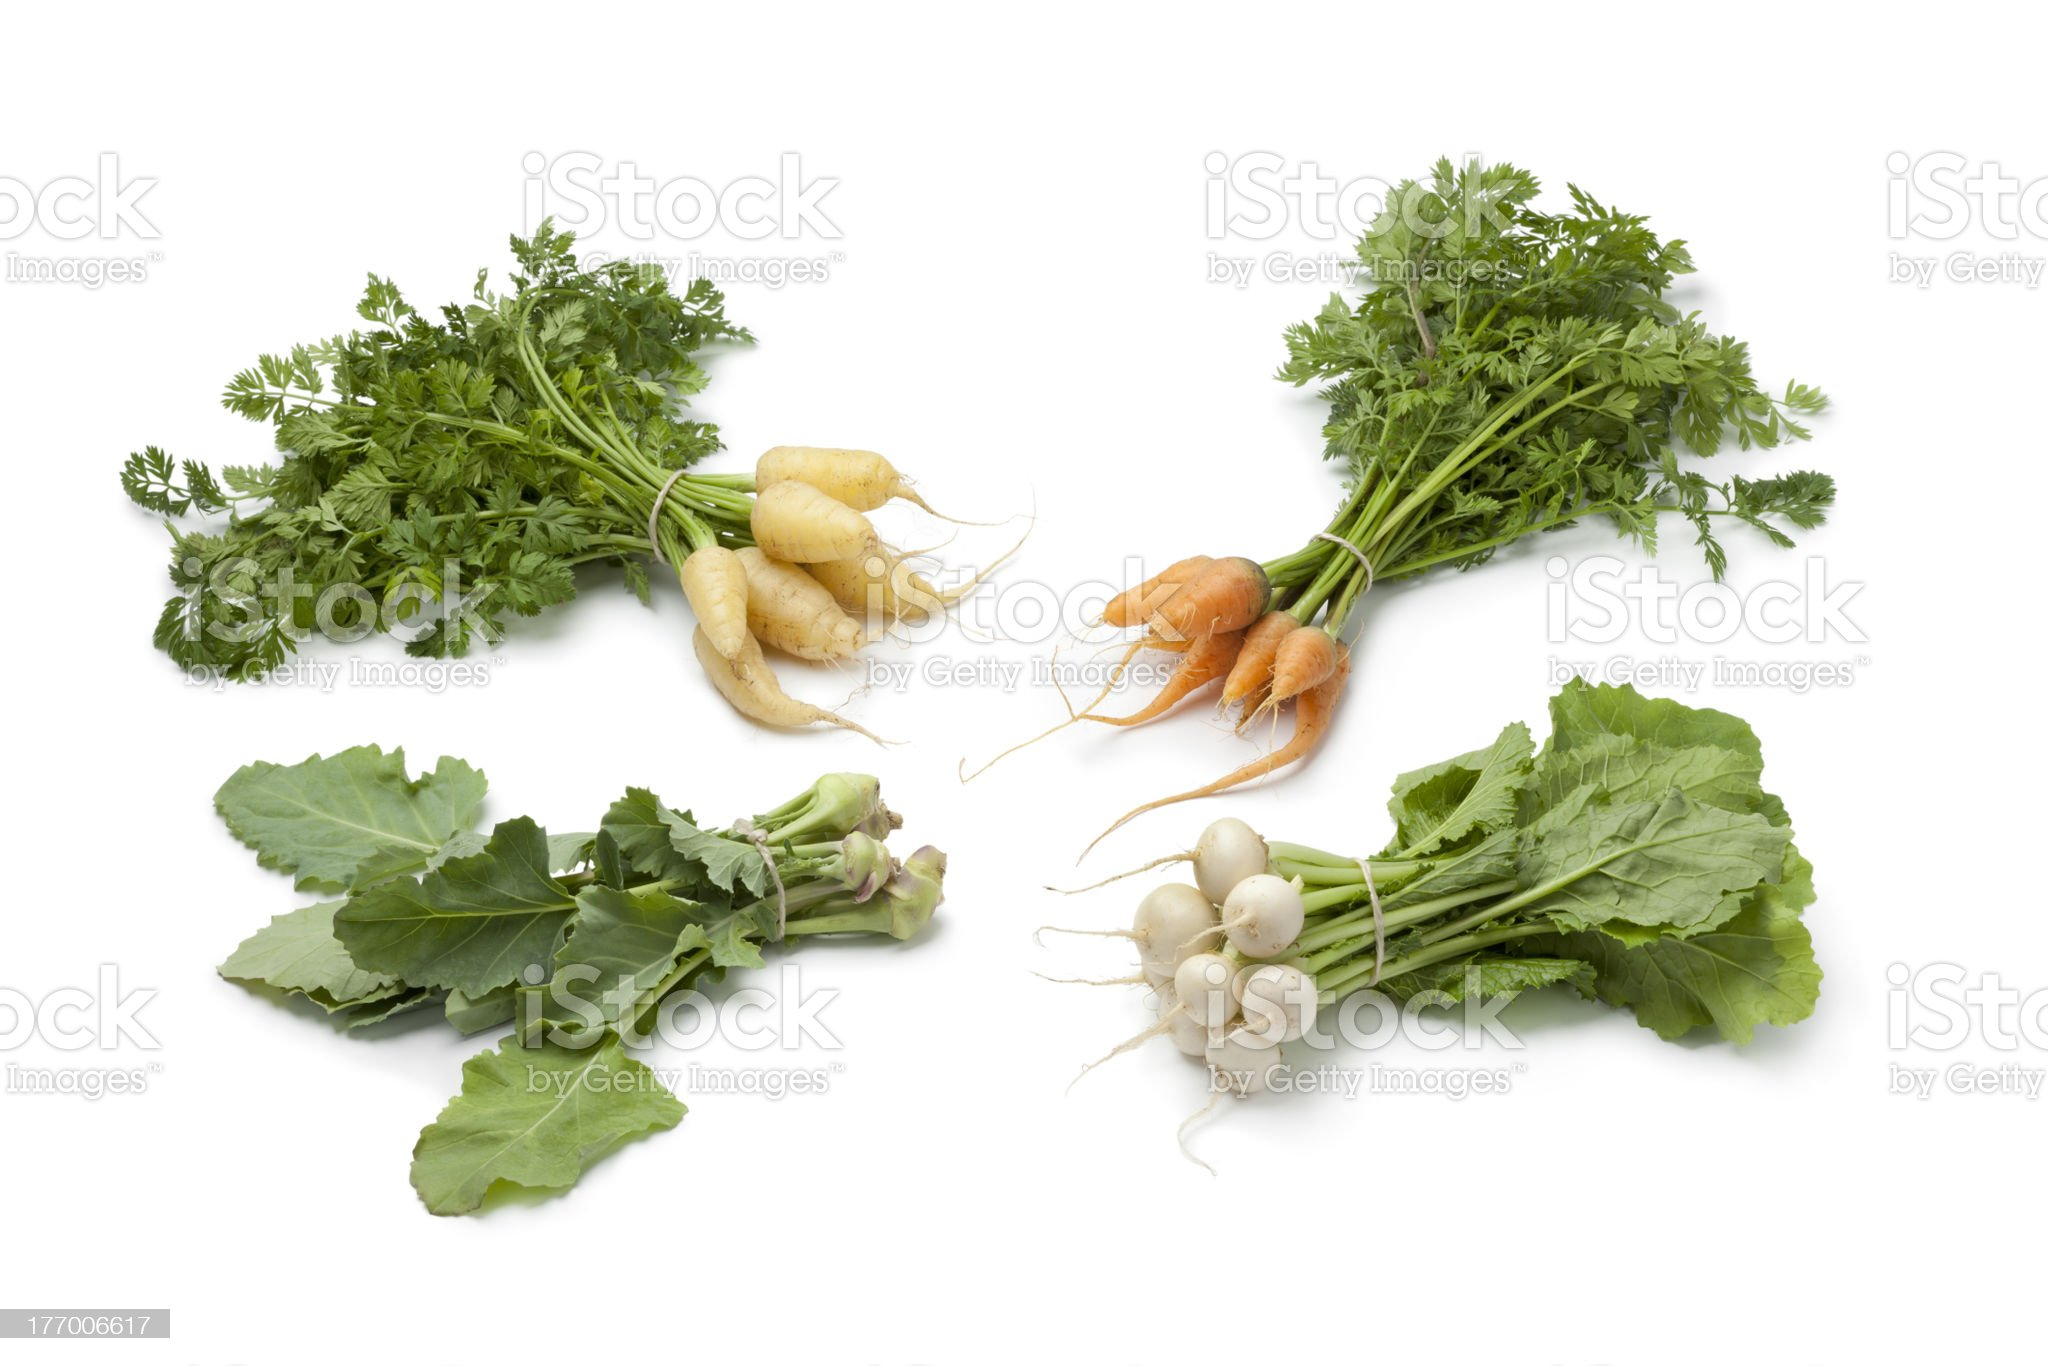 Variety of baby vegetables royalty-free stock photo